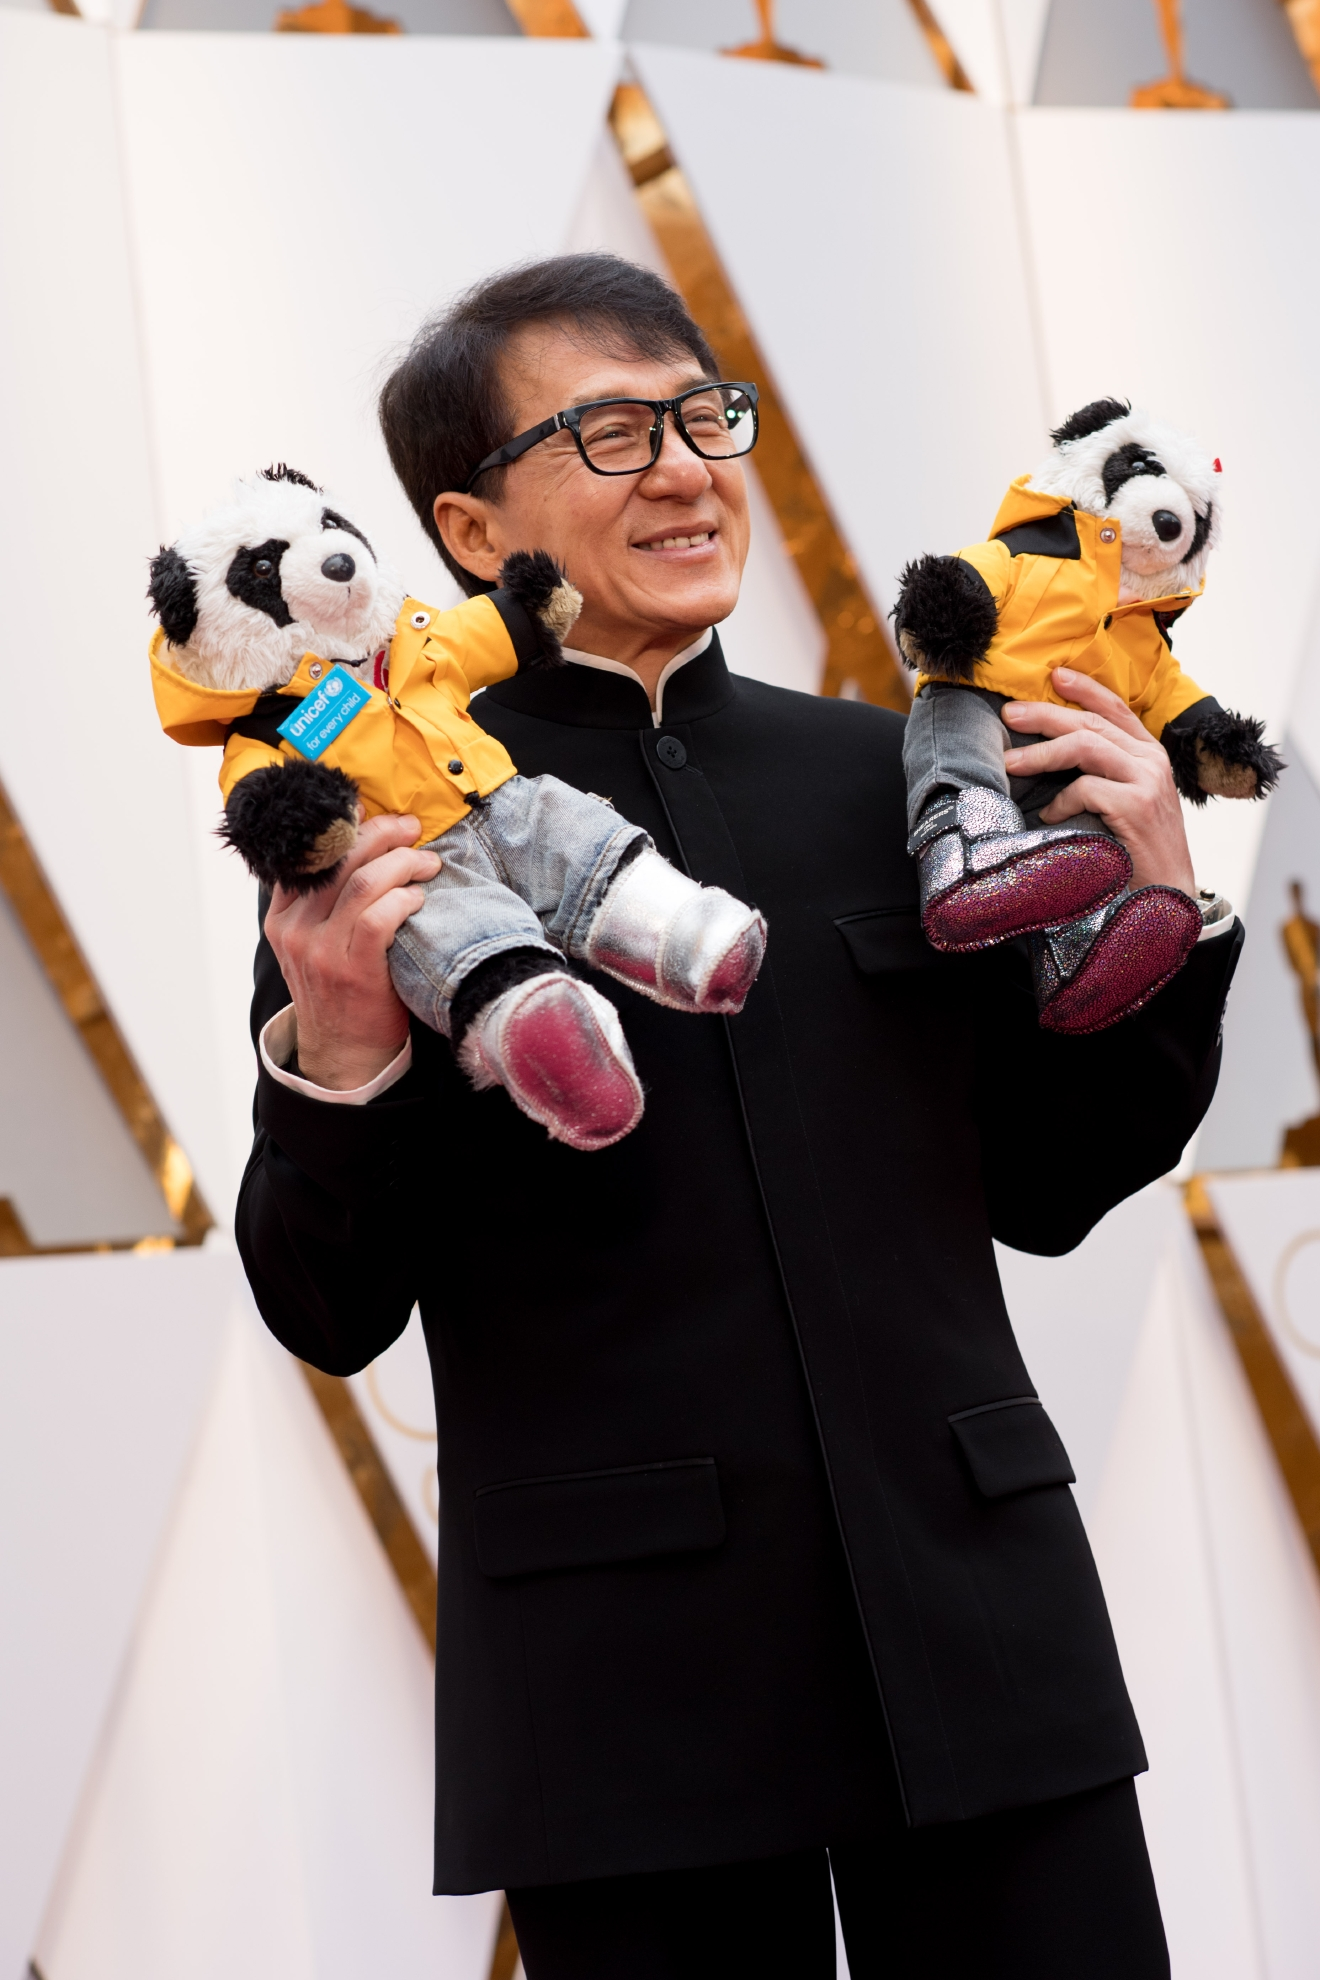 #27: Jackie Chan. To be clear, we are impressed that he brought stuffed animals to the red carpet. It's a great distraction technique away from the outfit (which actually isn't bad!). We're just confused. Please hold while we Google what in the world those were. (Image: AMPAS)